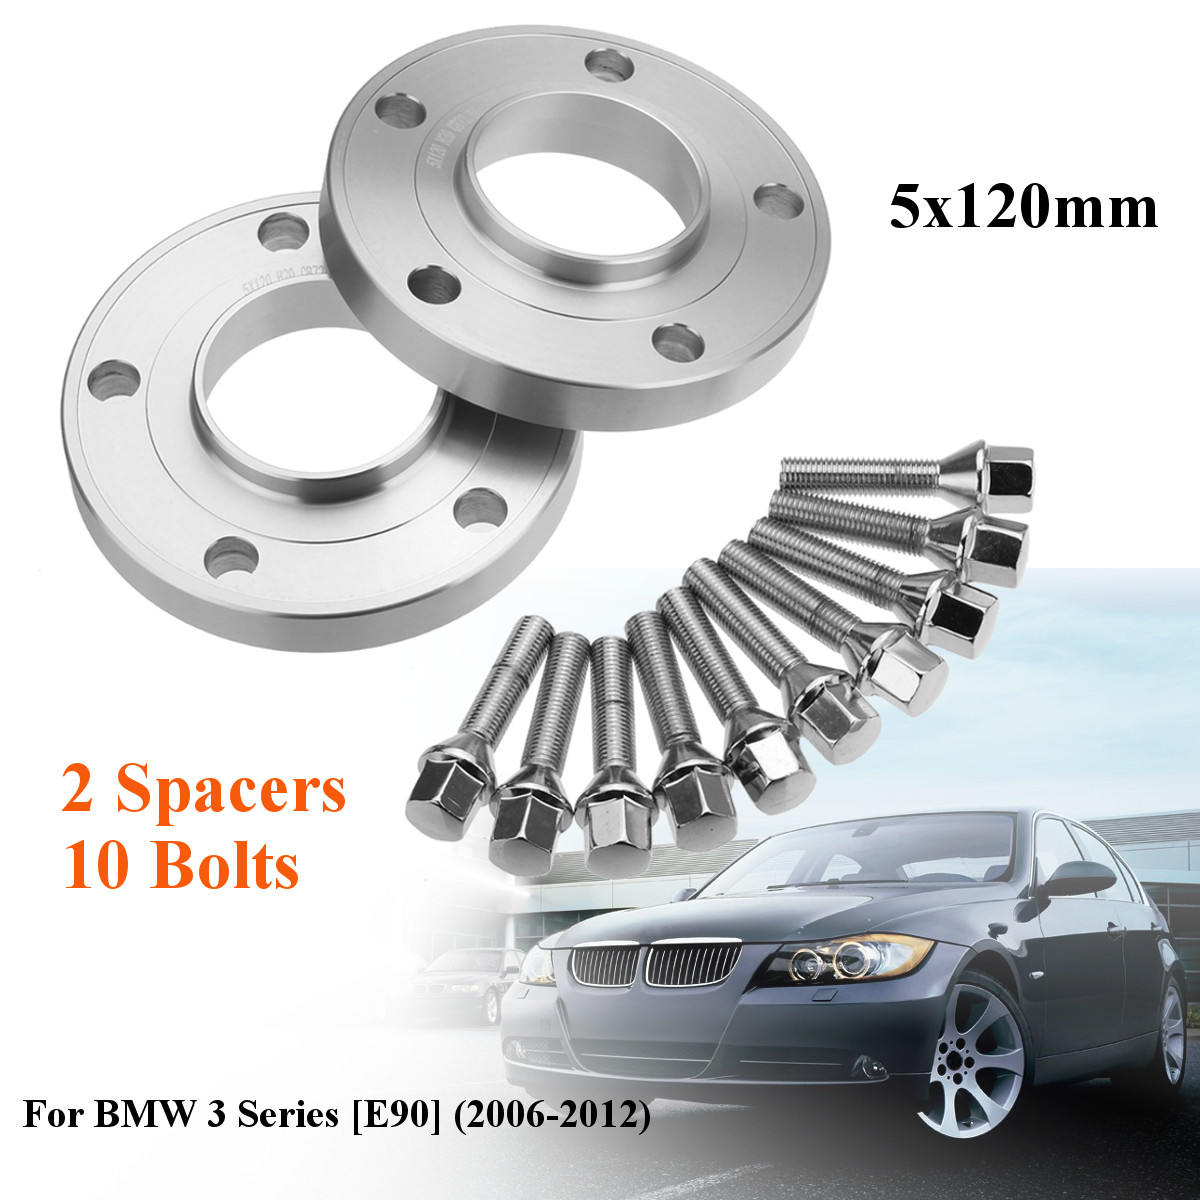 10mm alloy wheel spacers shims 10 x 35mm Thread extended bolts to fit BMW